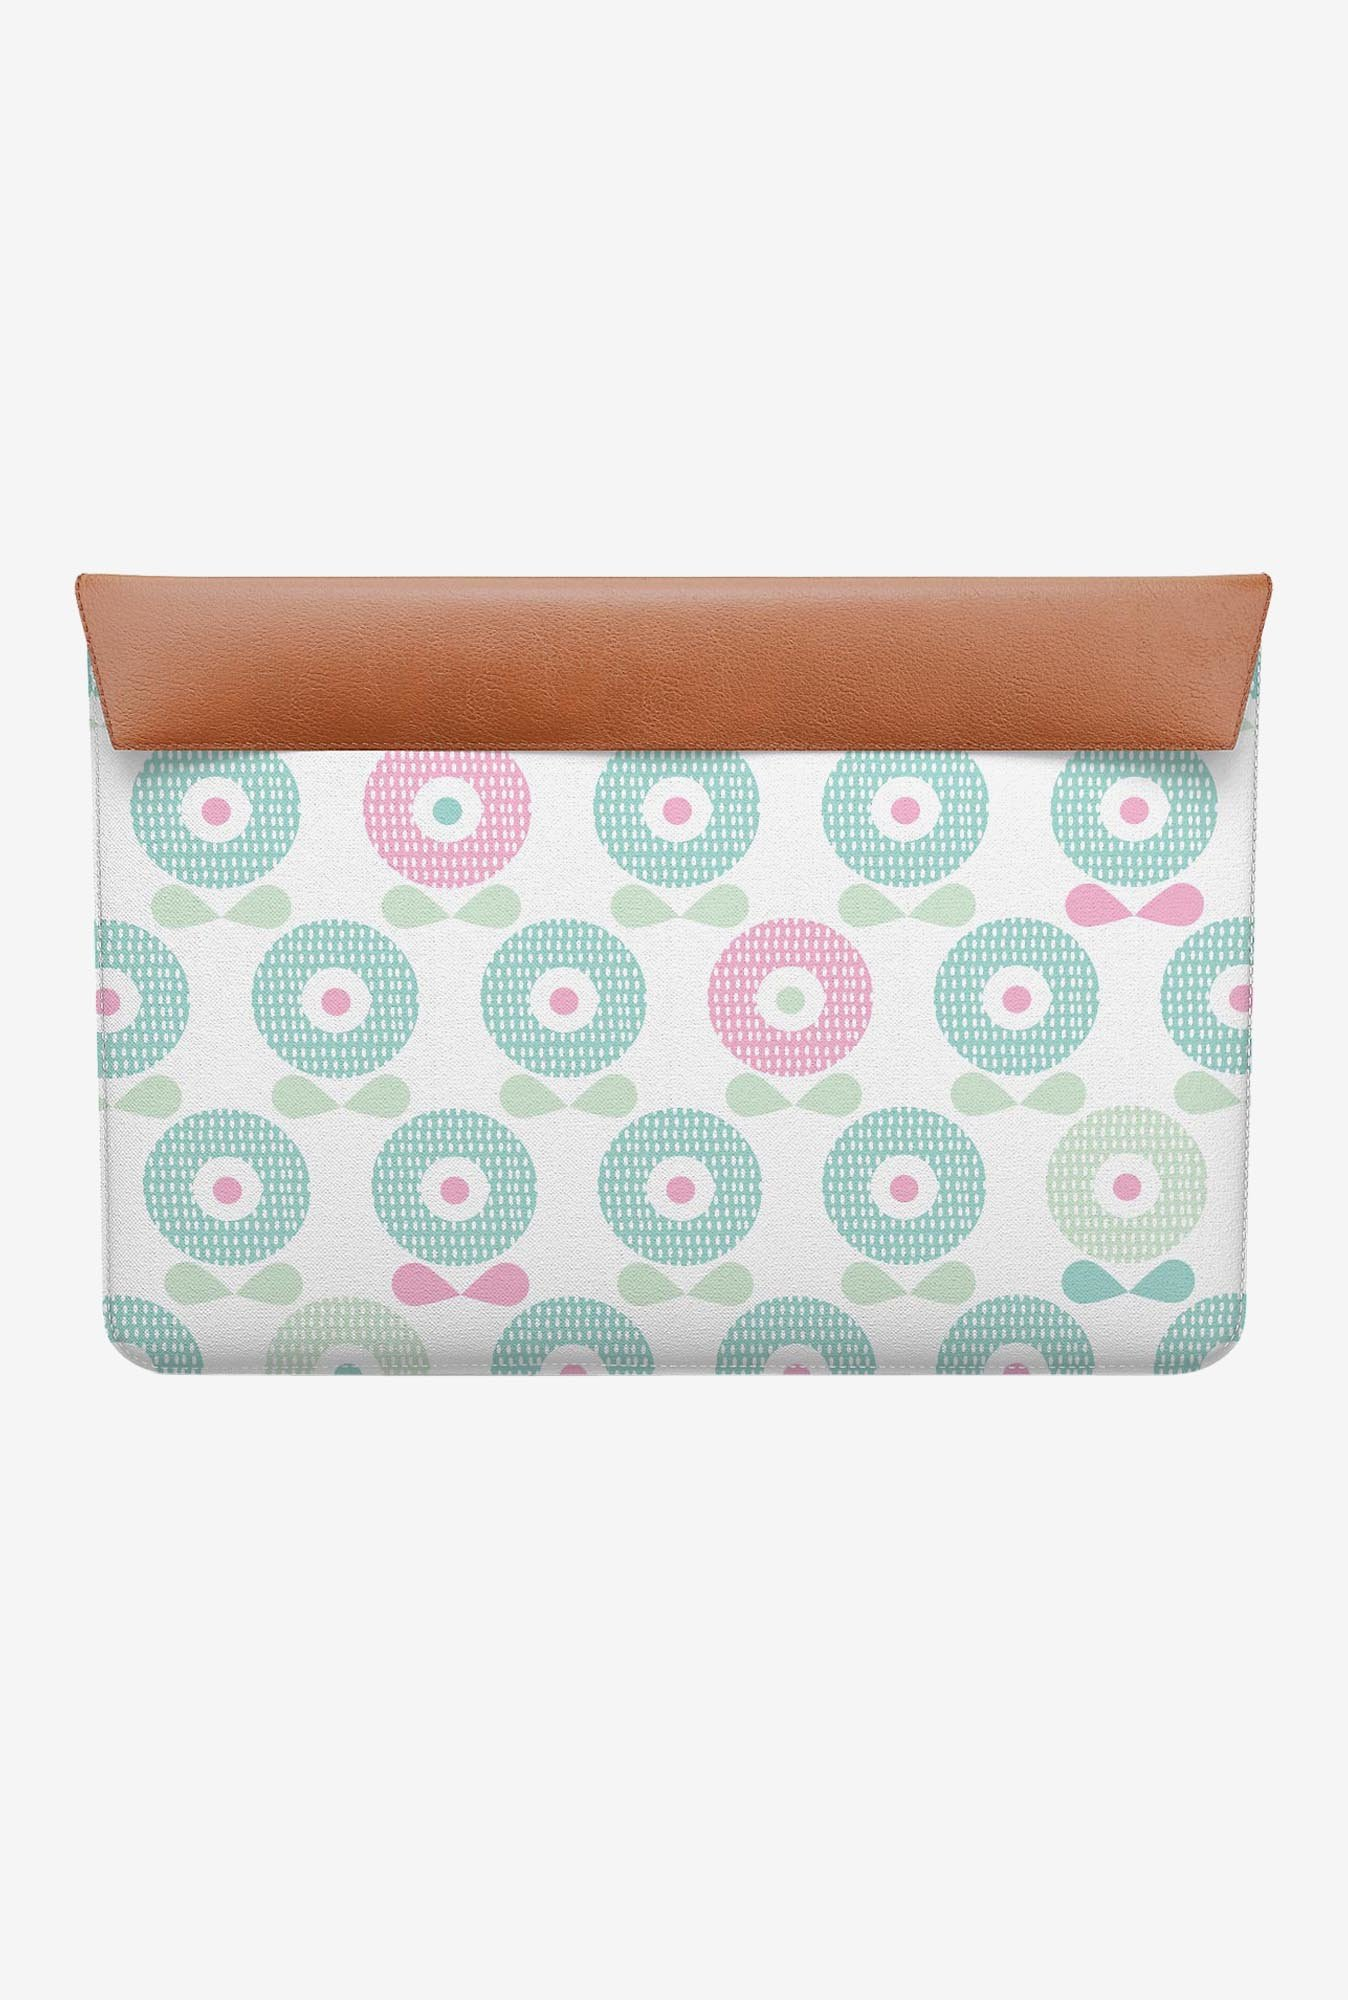 "DailyObjects Poppy Flowers MacBook Pro 15"" Envelope Sleeve"